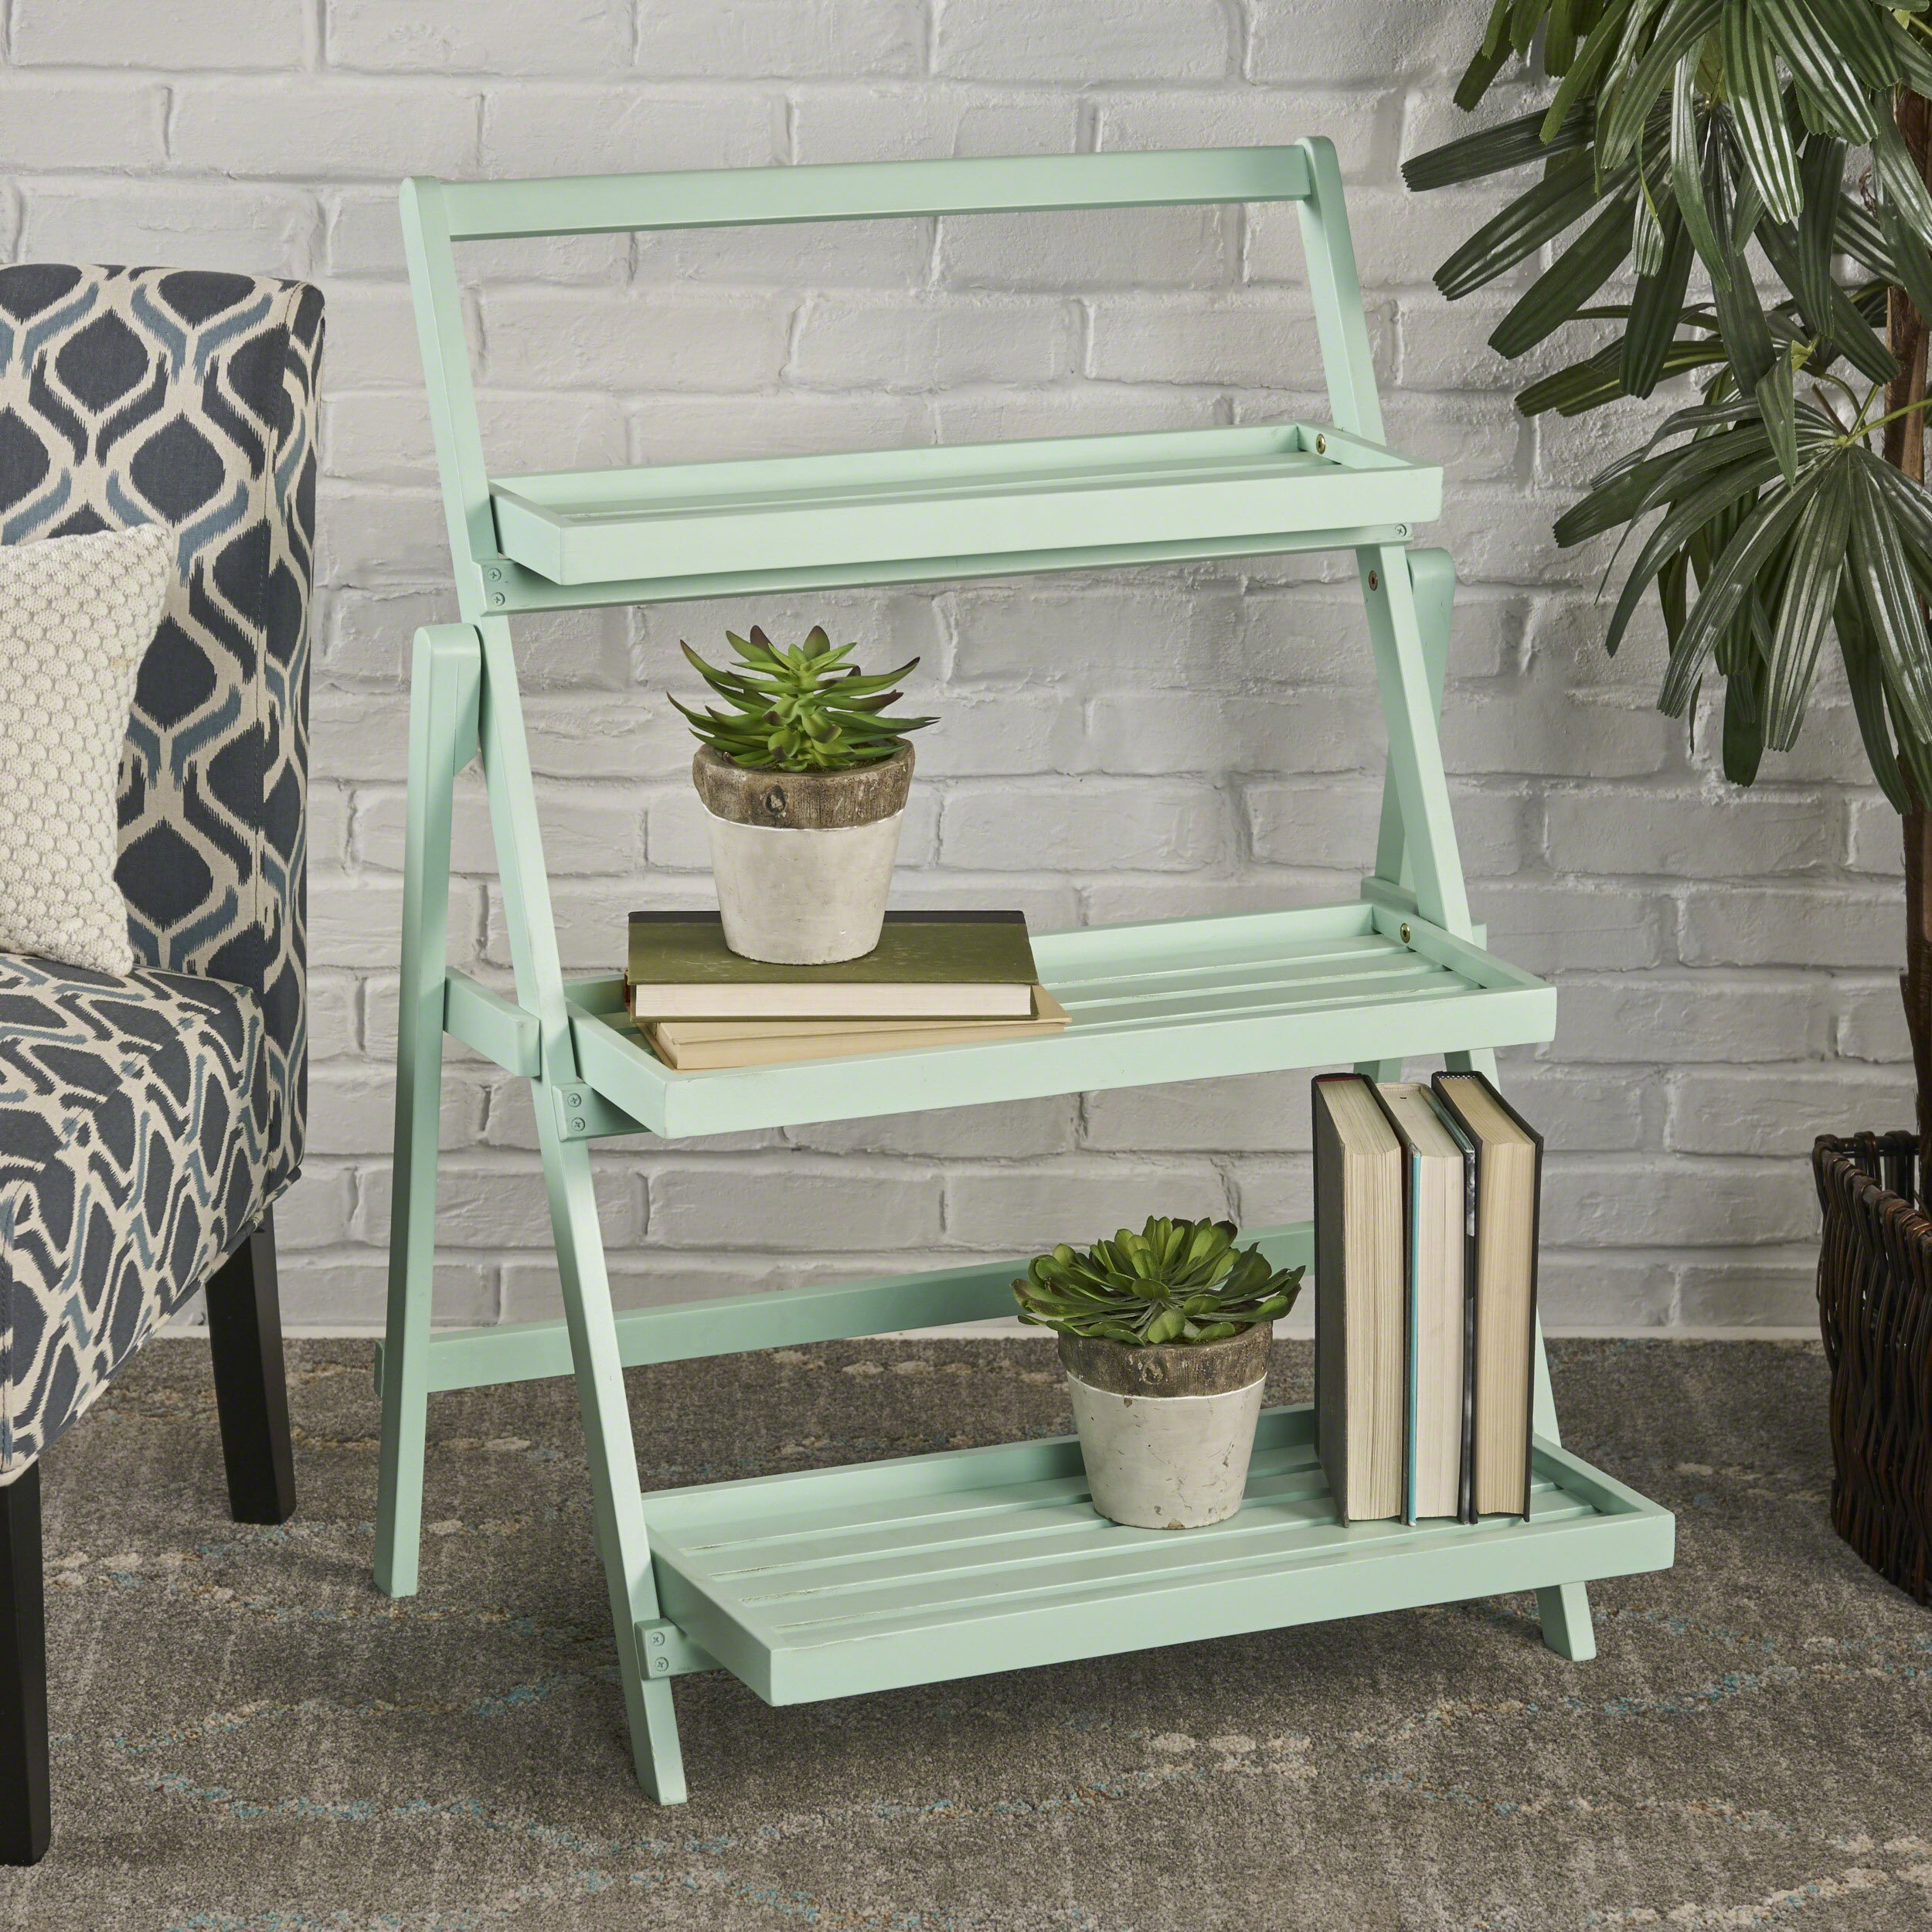 Christopher Knight Home 302583 Cletus Indoor Chic Acacia Wood Plant Stand, Light Mint by Christopher Knight Home